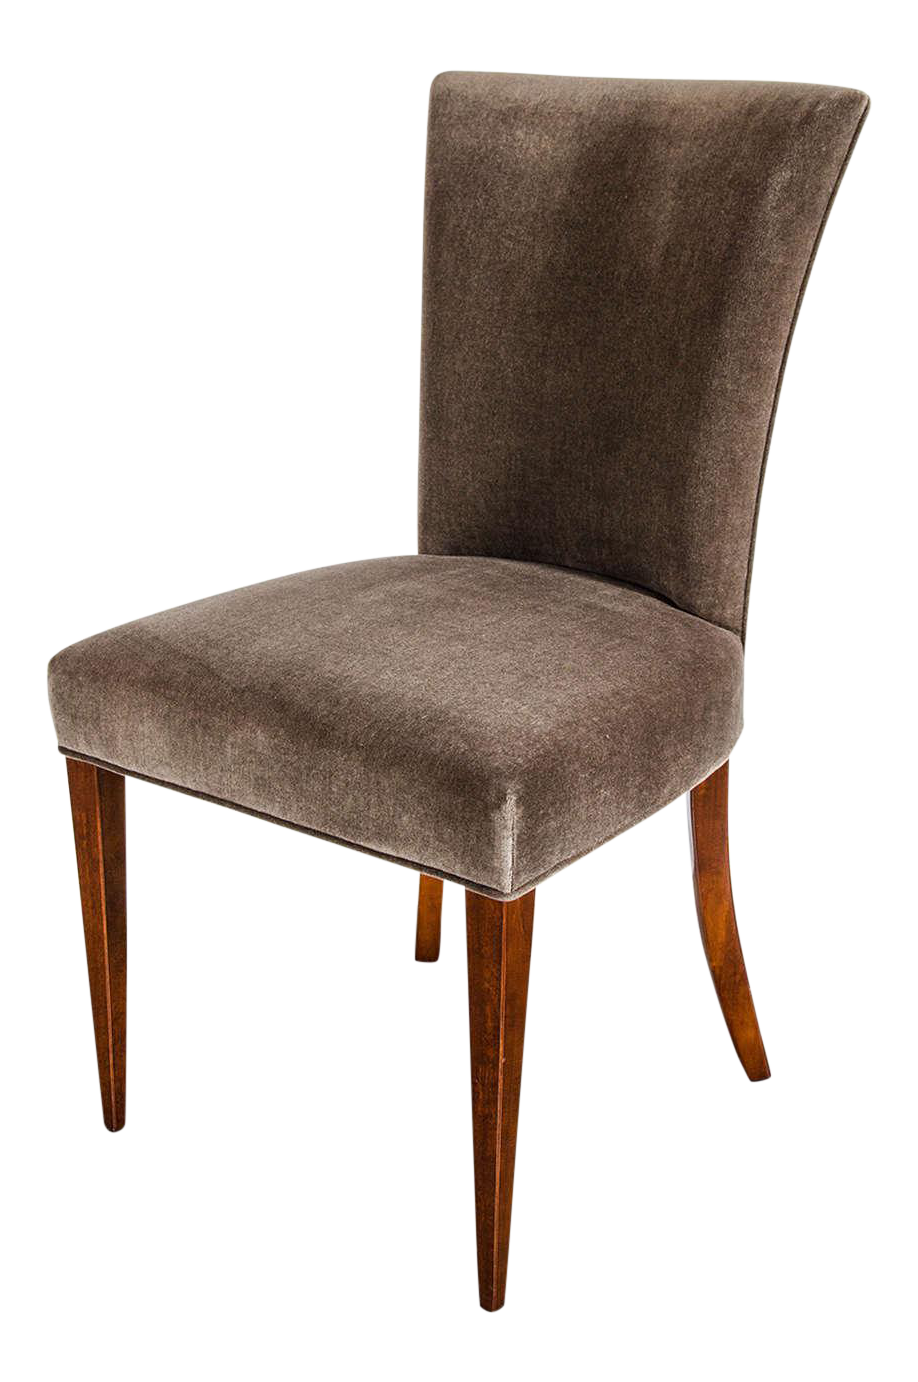 Art deco office chair Stylish Fine Art Deco Occasional Or Desk Chair In Mahogany And Tobacco Brown Mohair For Sale Decaso Worldclass Fine Art Deco Occasional Or Desk Chair In Mahogany And